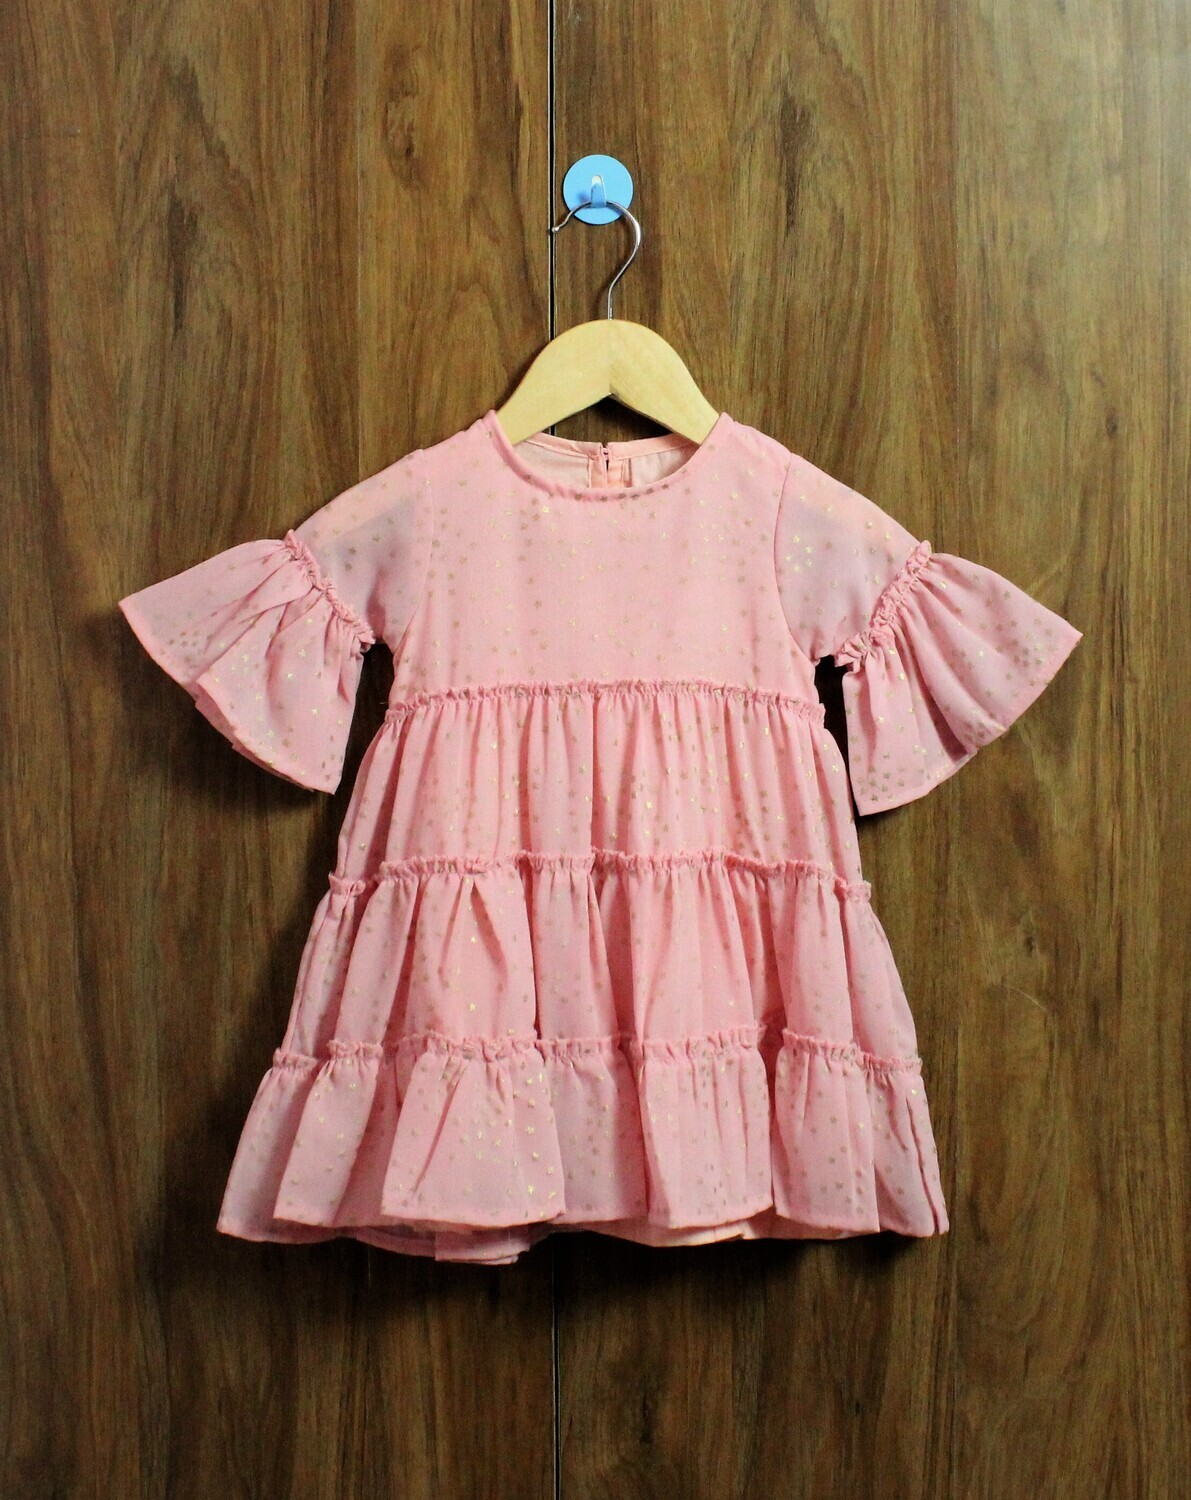 Bell sleeves dress(1 to 6 Yrs.)